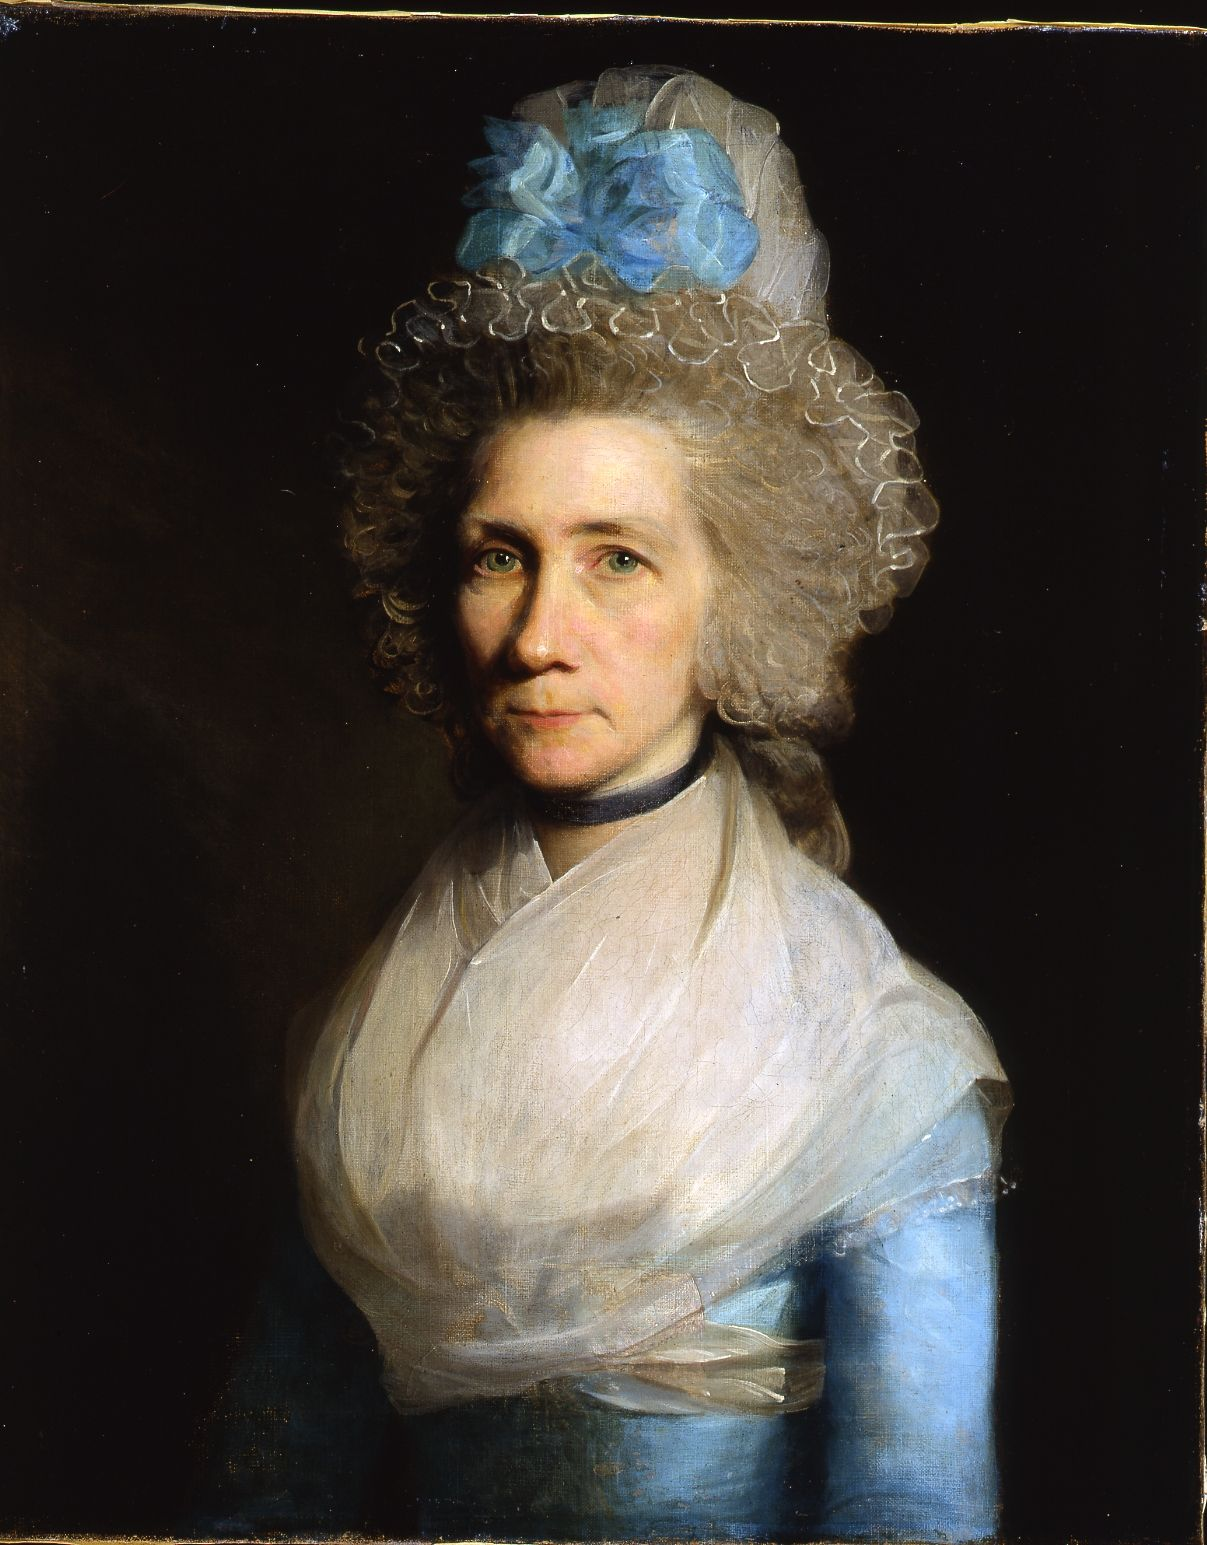 Gilbert Stuart (American, 1755 - 1828) Portrait of Elizabeth Caldwell Oil on canvas 18th Century (1790s) 26 x 21 inches 66 x 53.3 cm. By descent in the Caldwell family of Dublin until the present time.